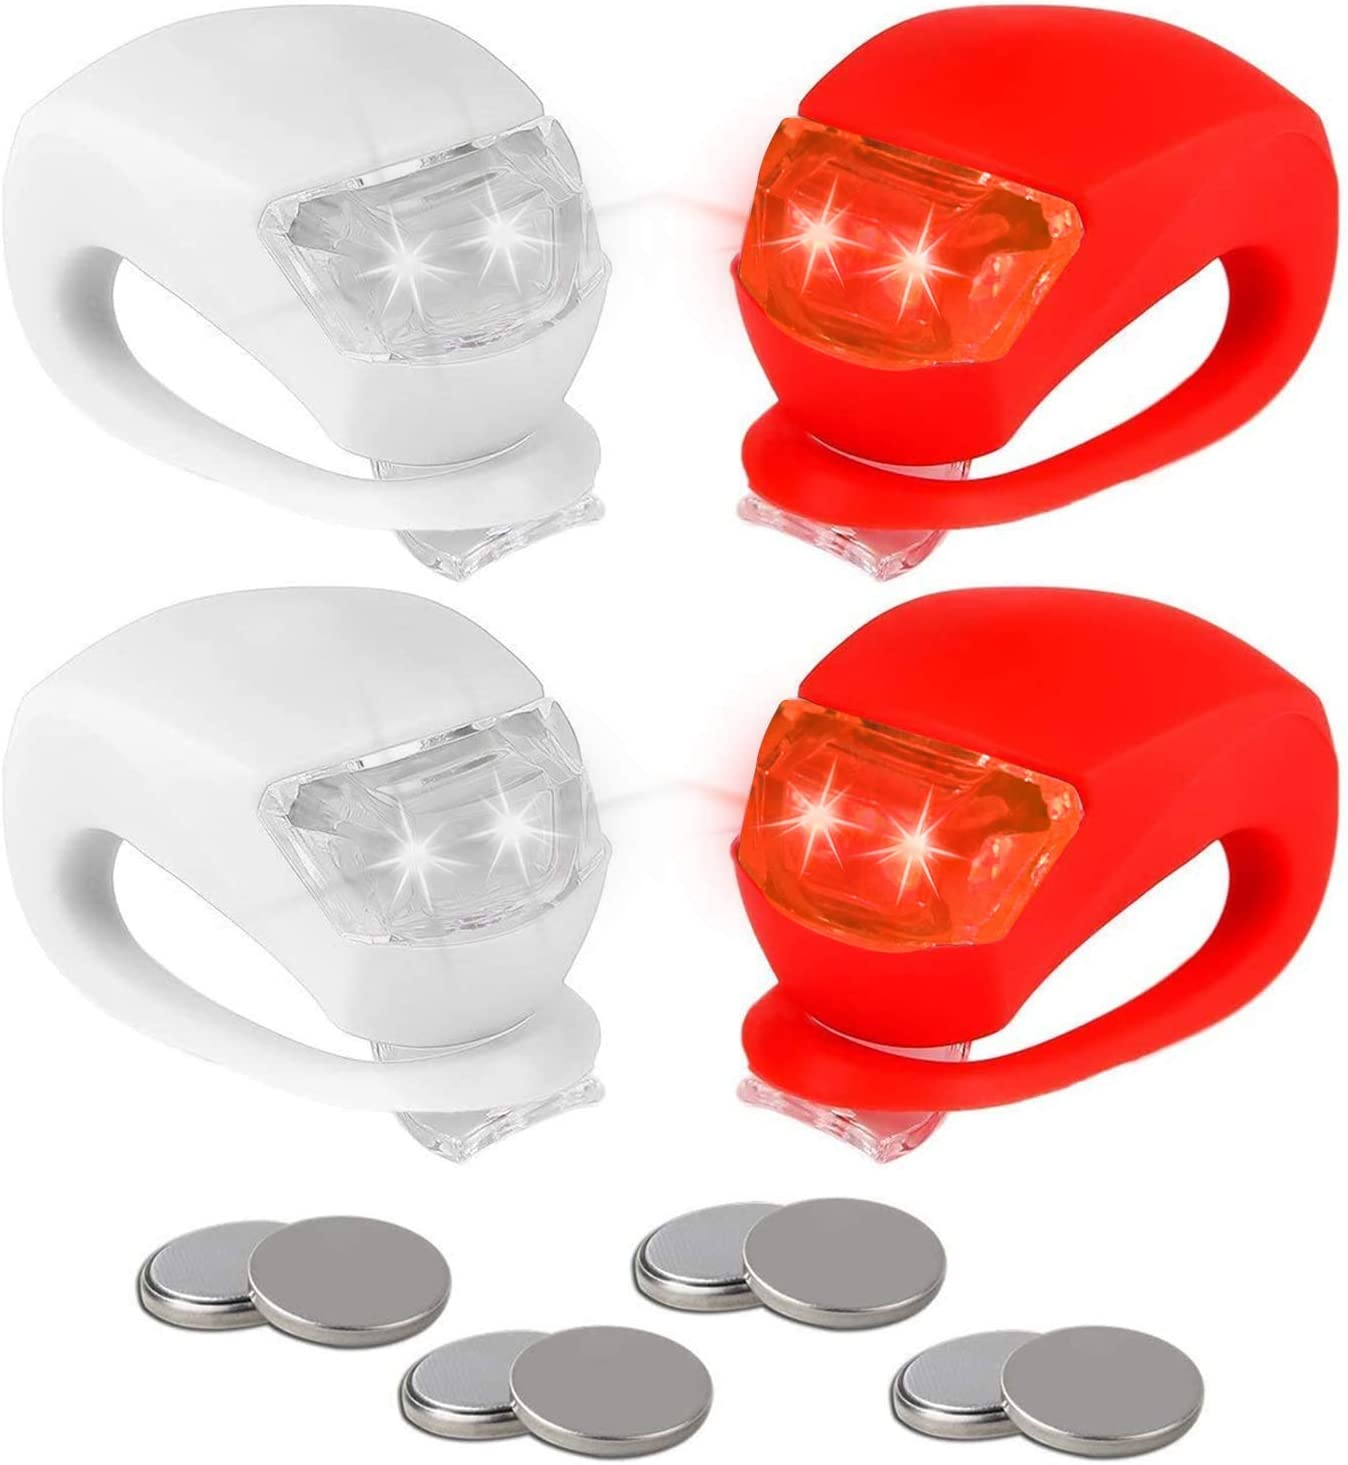 NEW Bicycle Lamp Bike Light LED Silicone Front Rear Lights Taillight DE